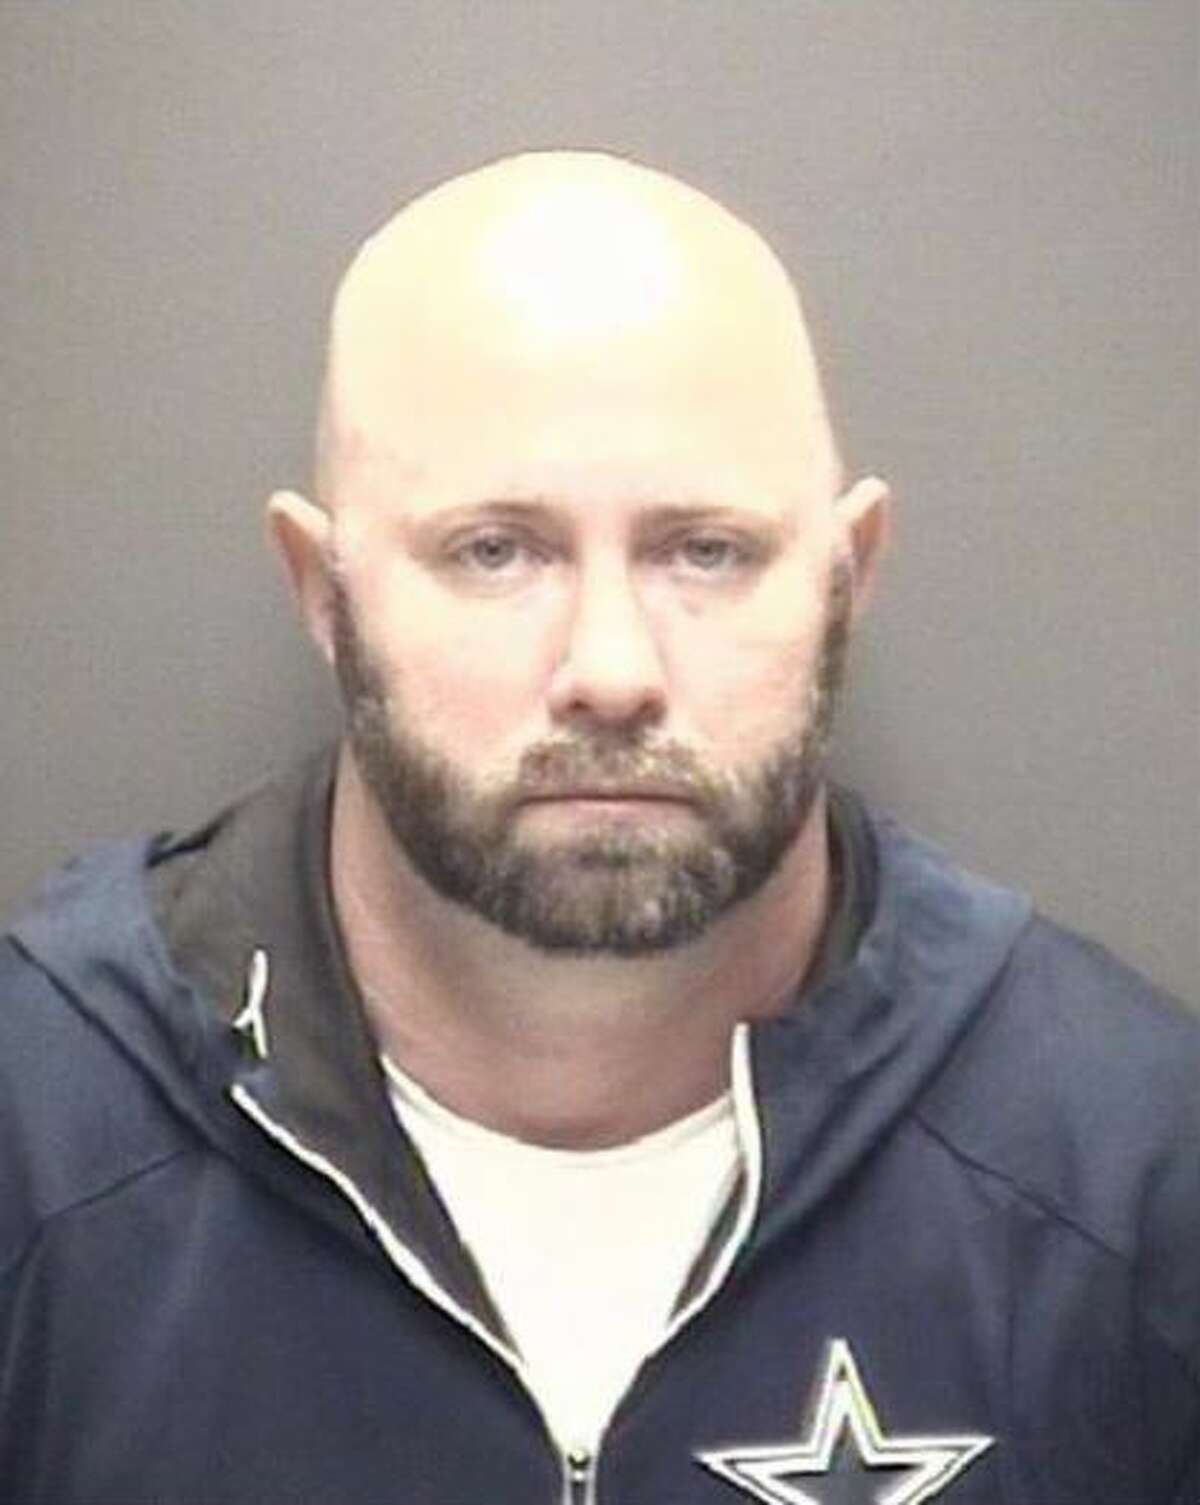 Court records allege that Aaron Willis, 42, approached and confronted a 14-year-old boy and physically assaulted him by